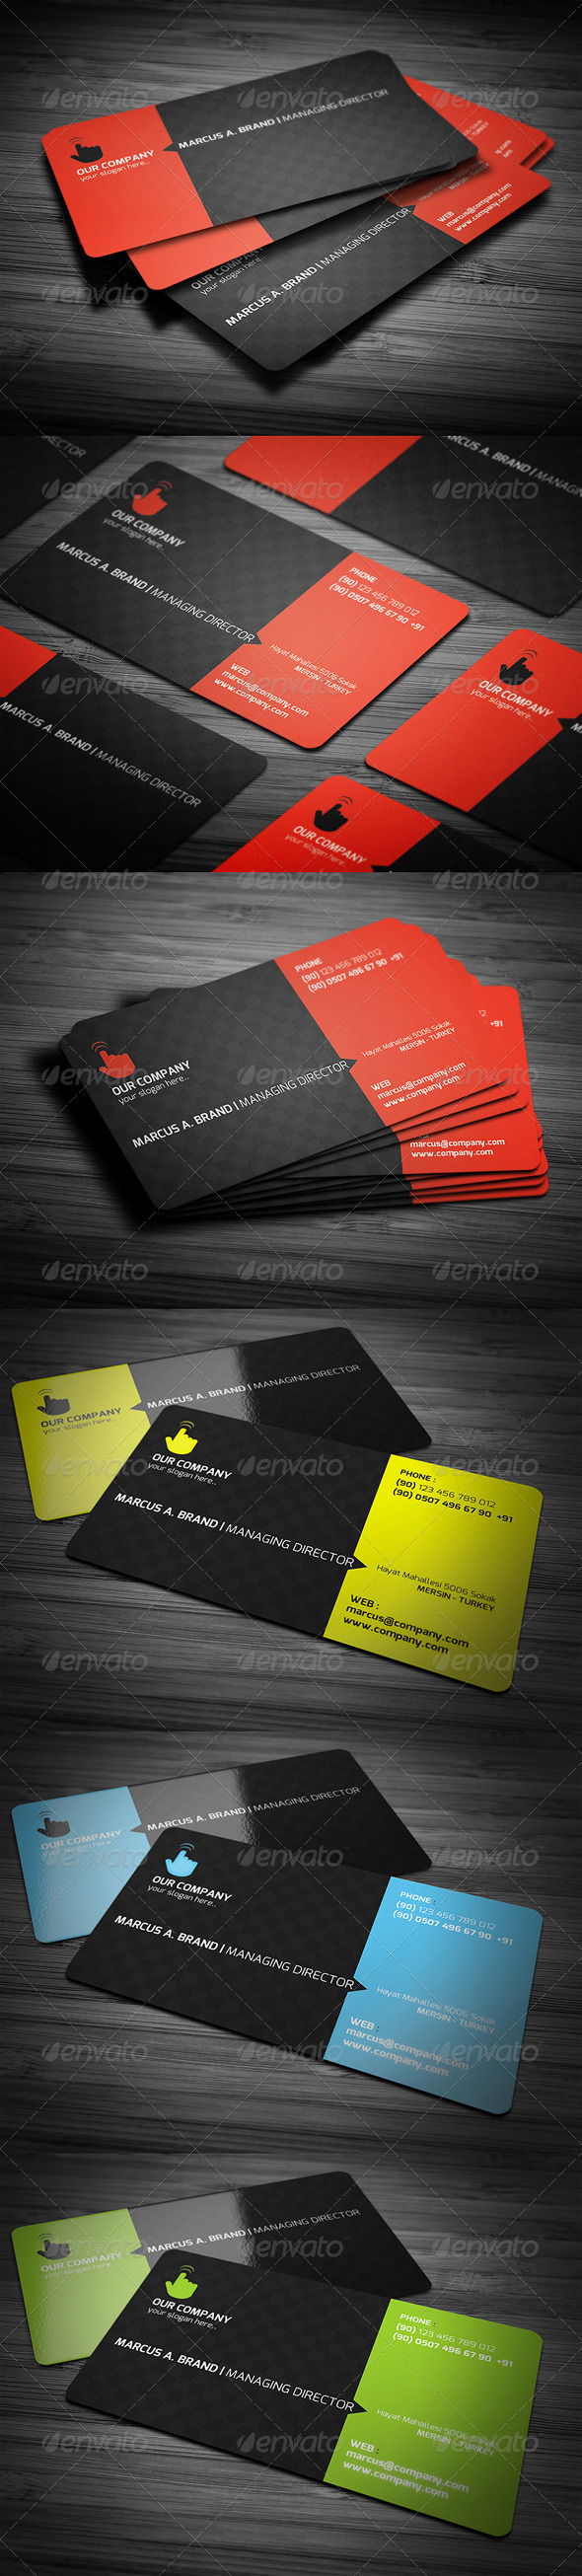 Rounded Corner Business Card - Corporate Business Cards